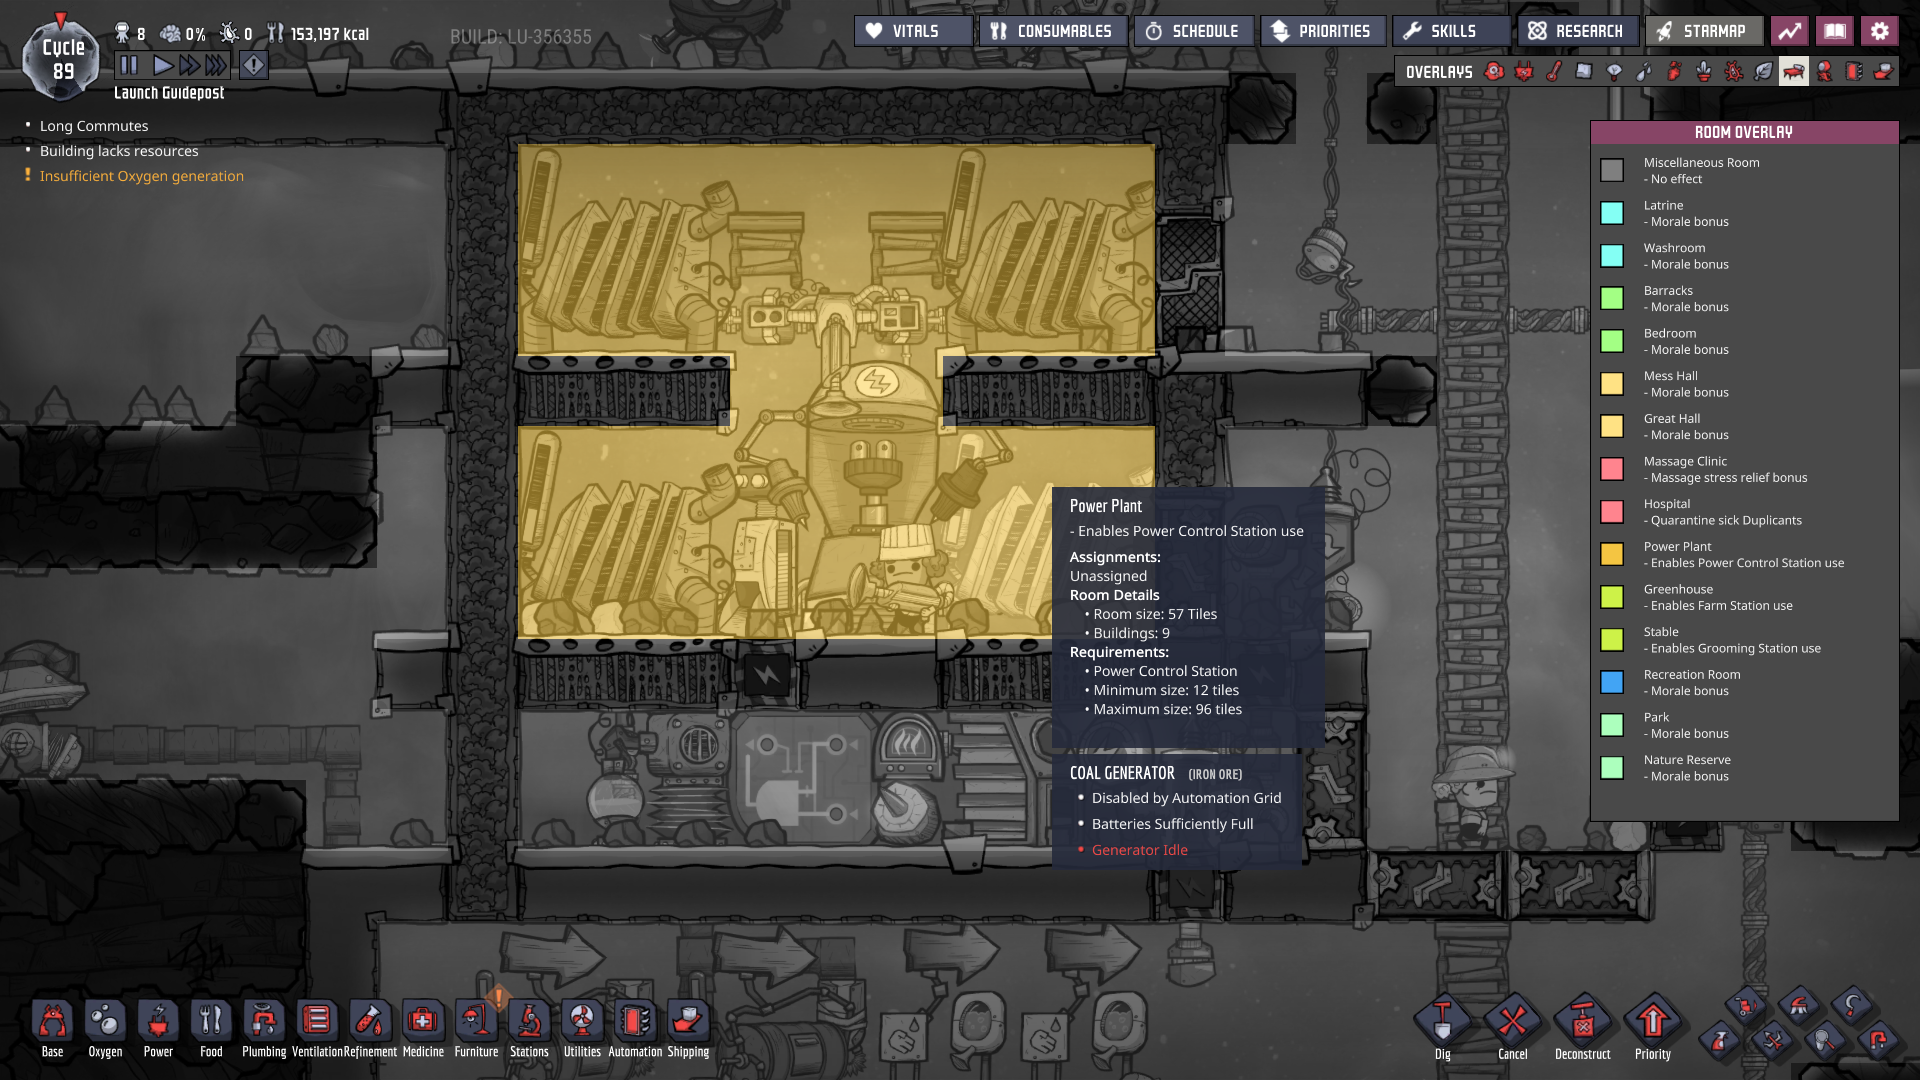 Steam Community :: Guide :: Useful Construction Patterns